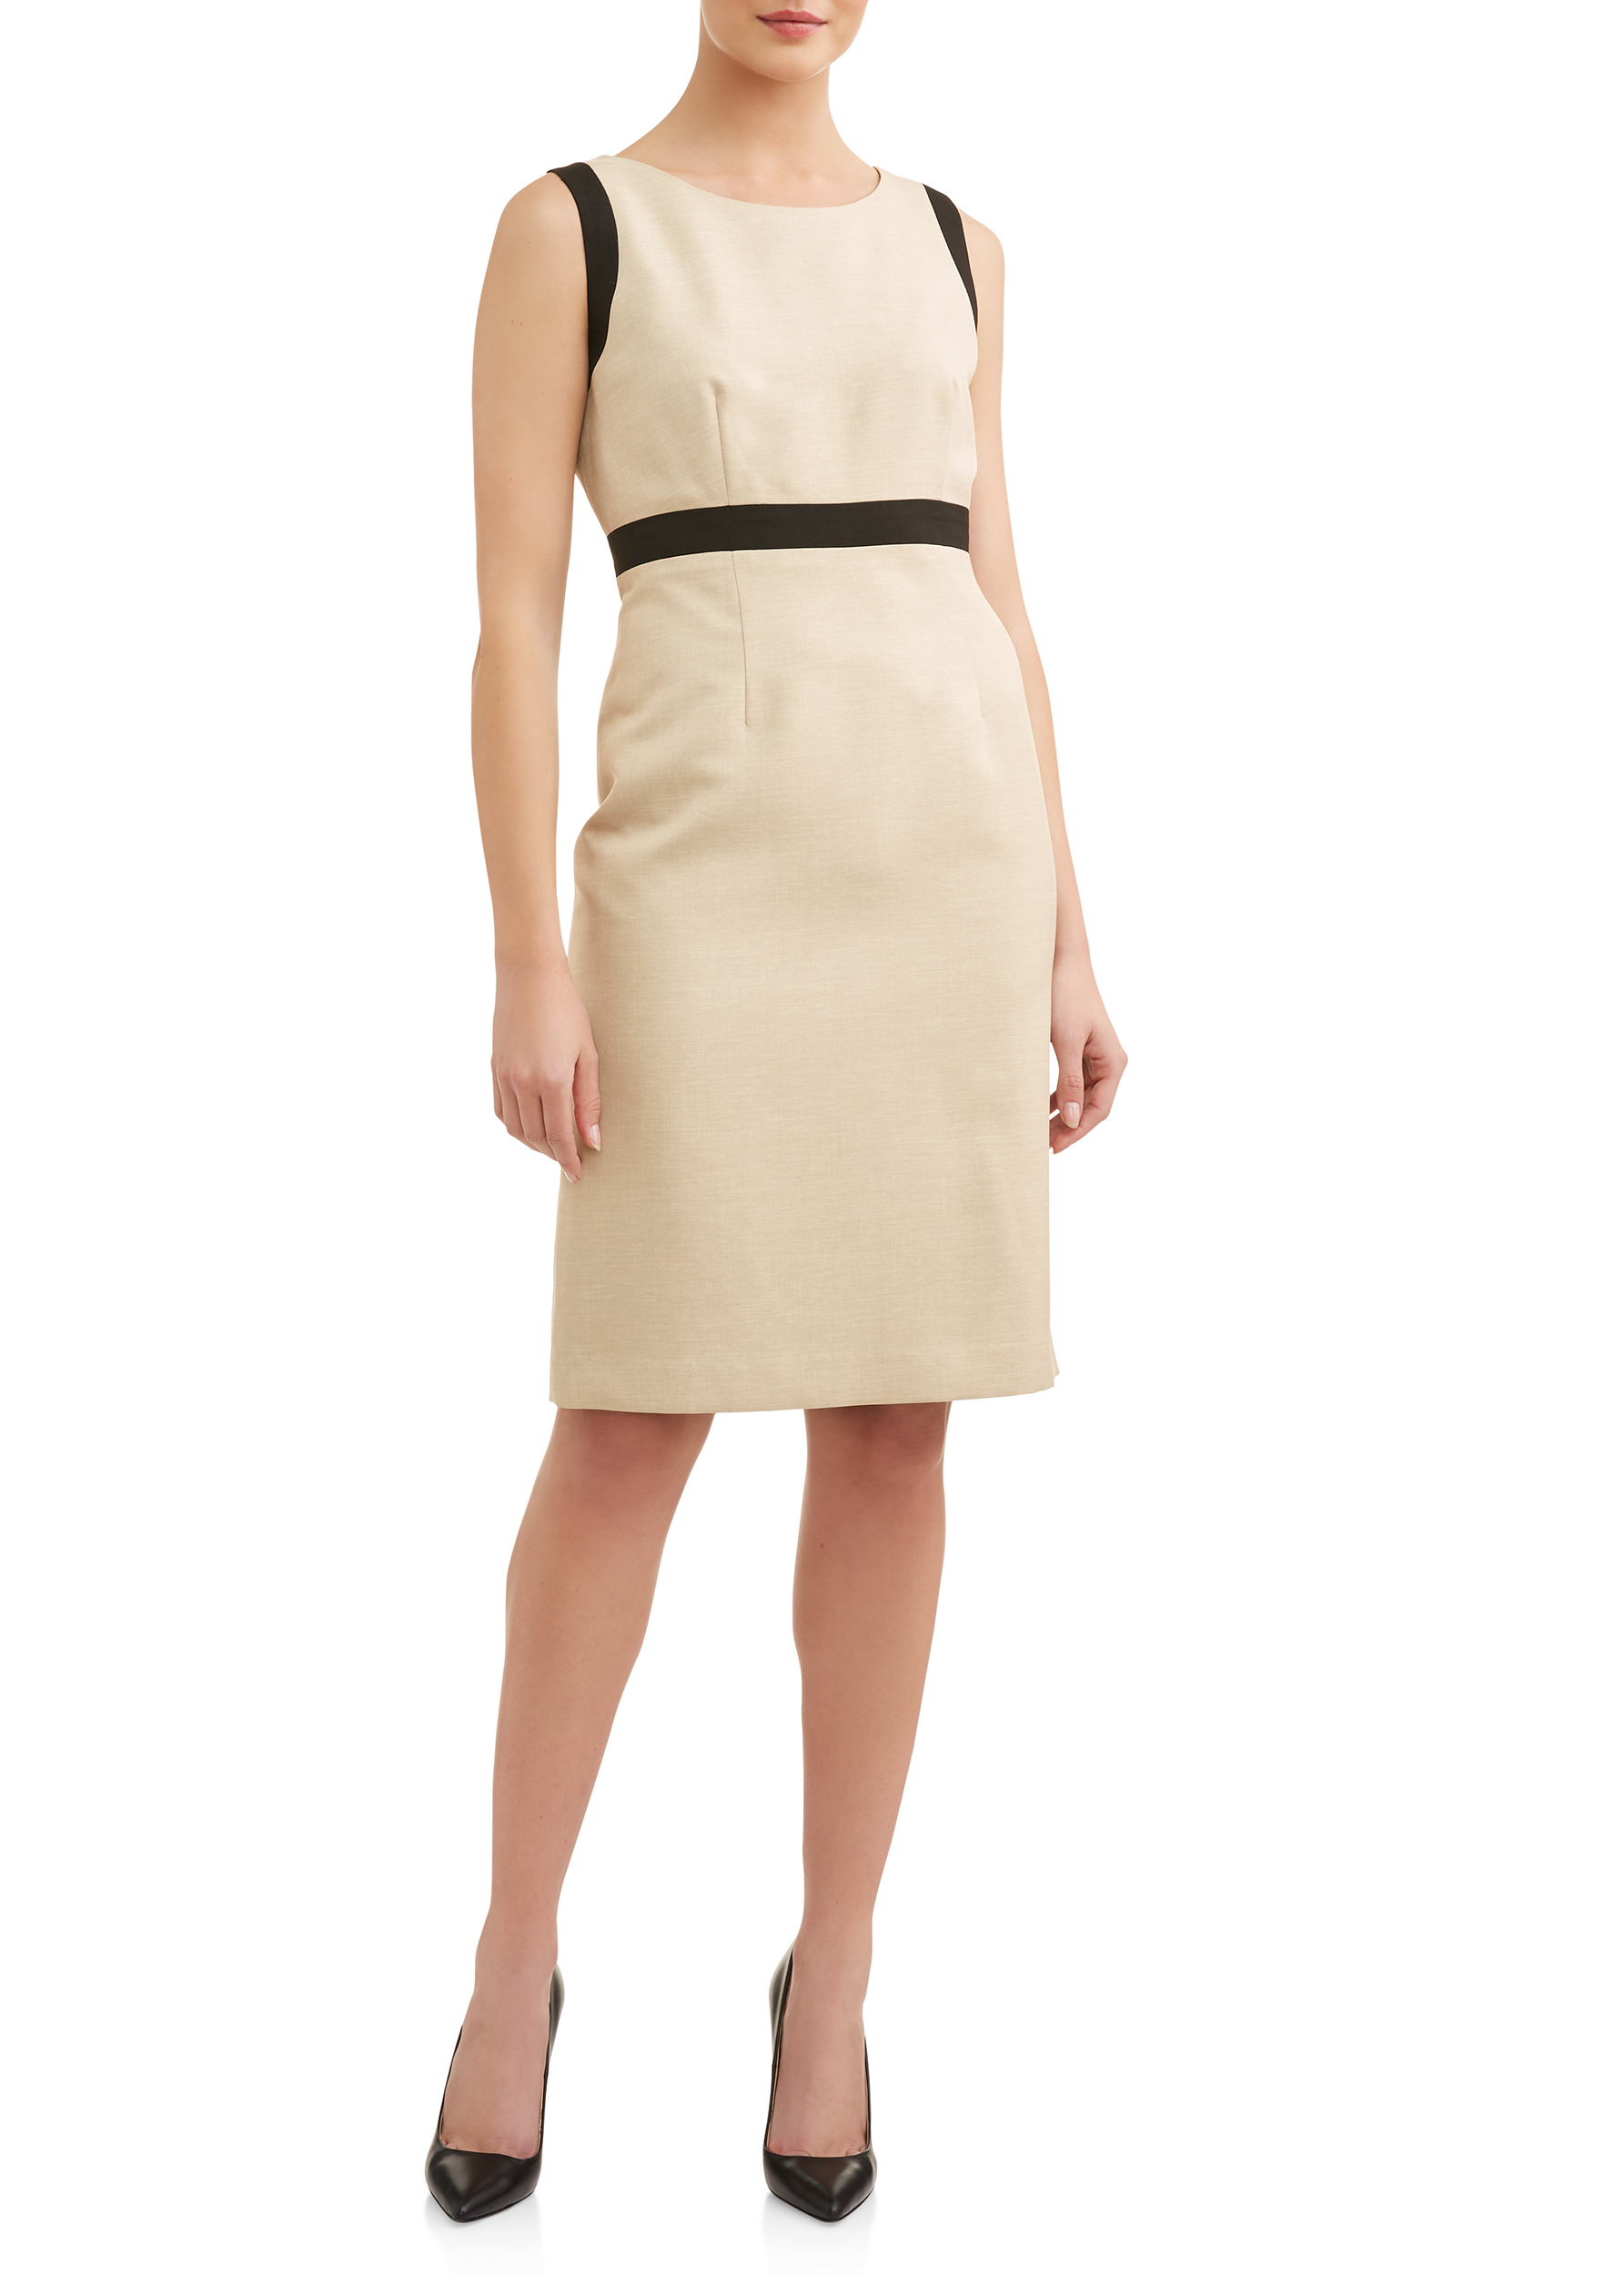 Women's Light Contrast Dress